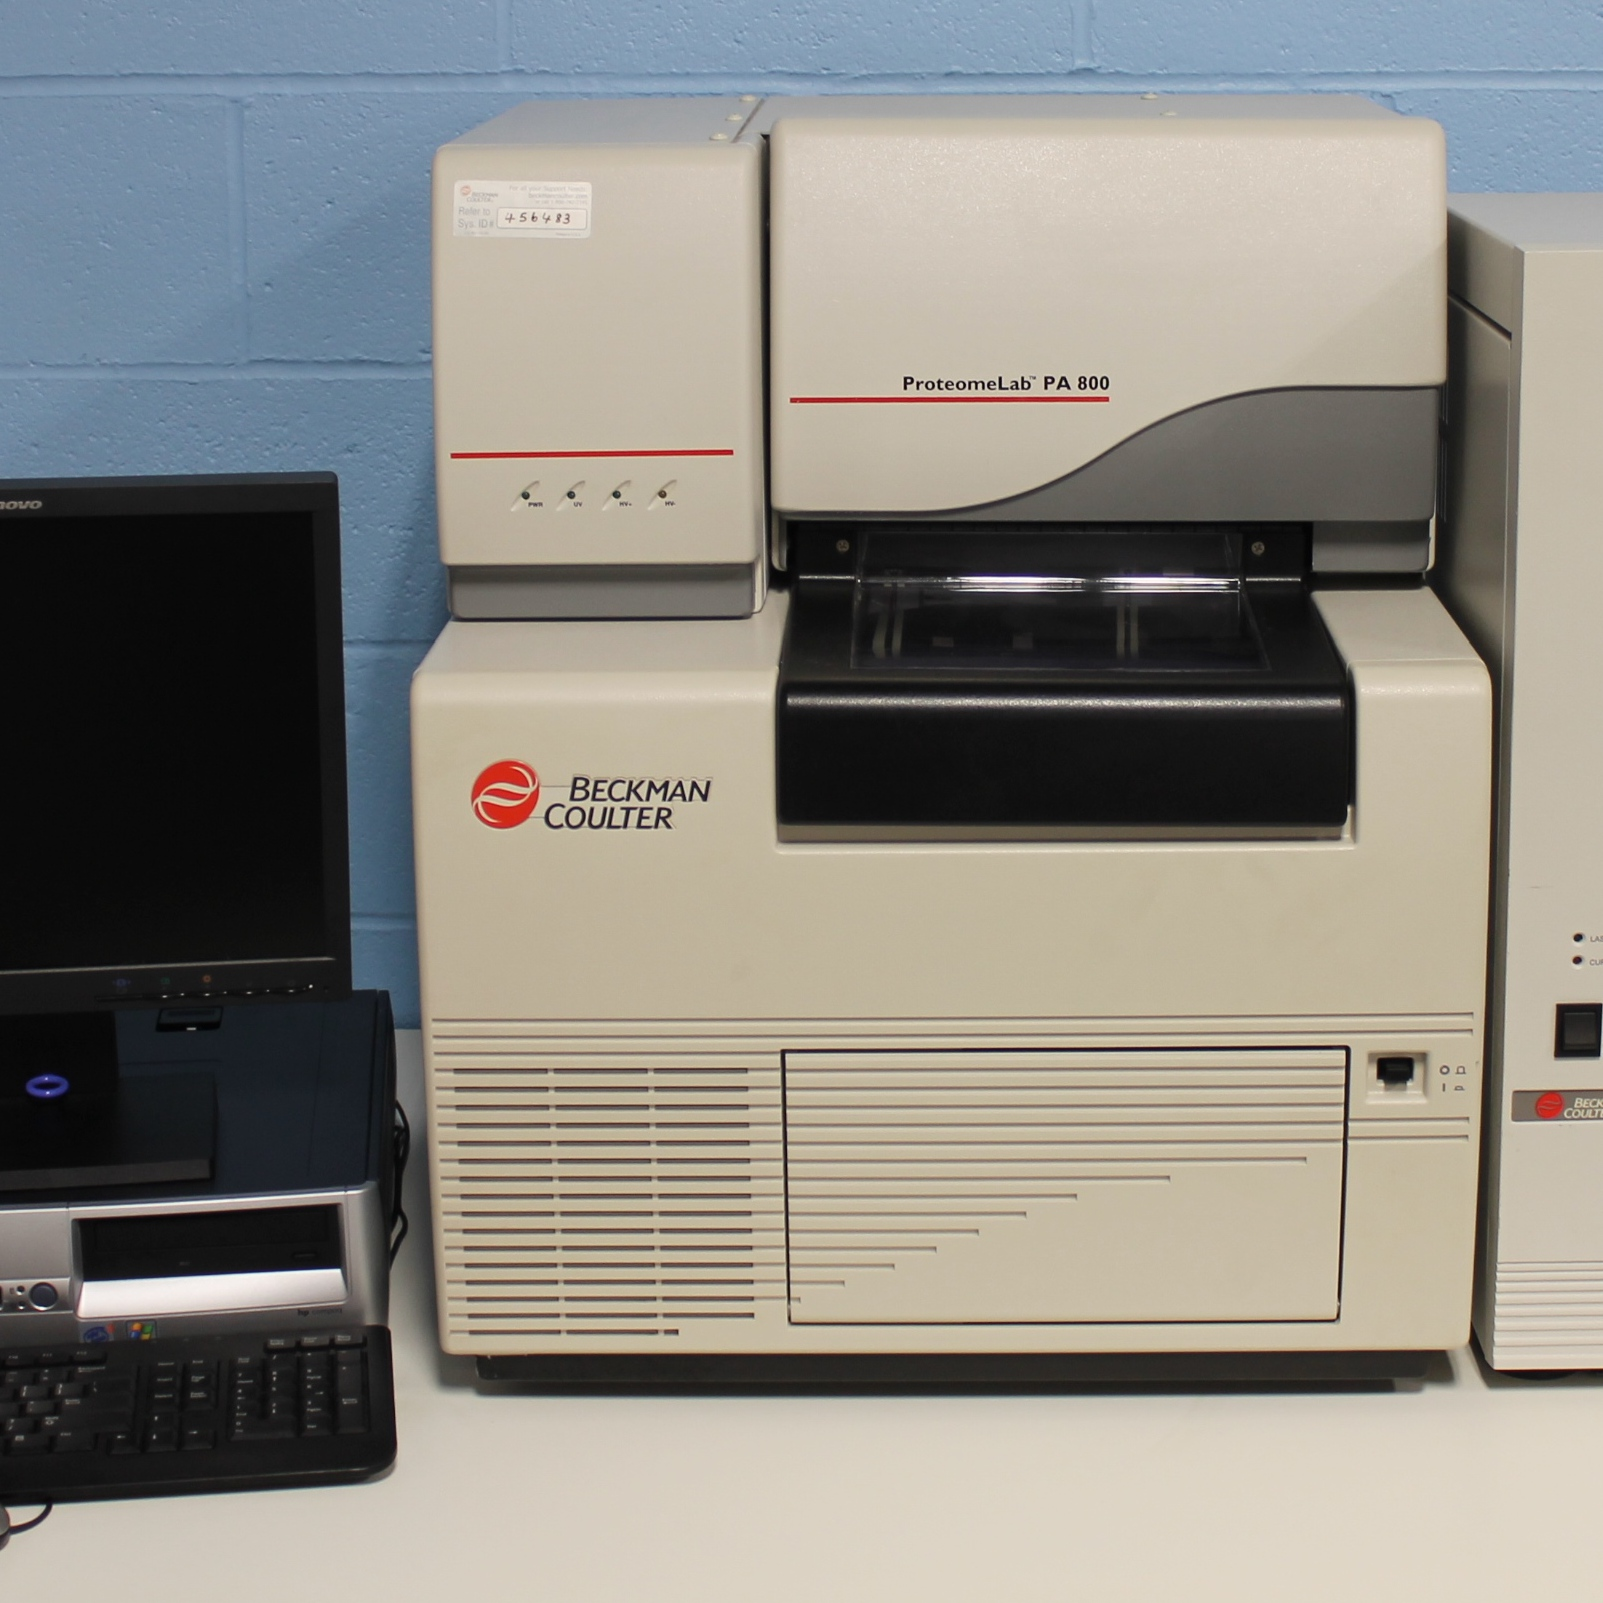 Beckman Coulter PA800 ProteomeLab Protein Characterization System Image